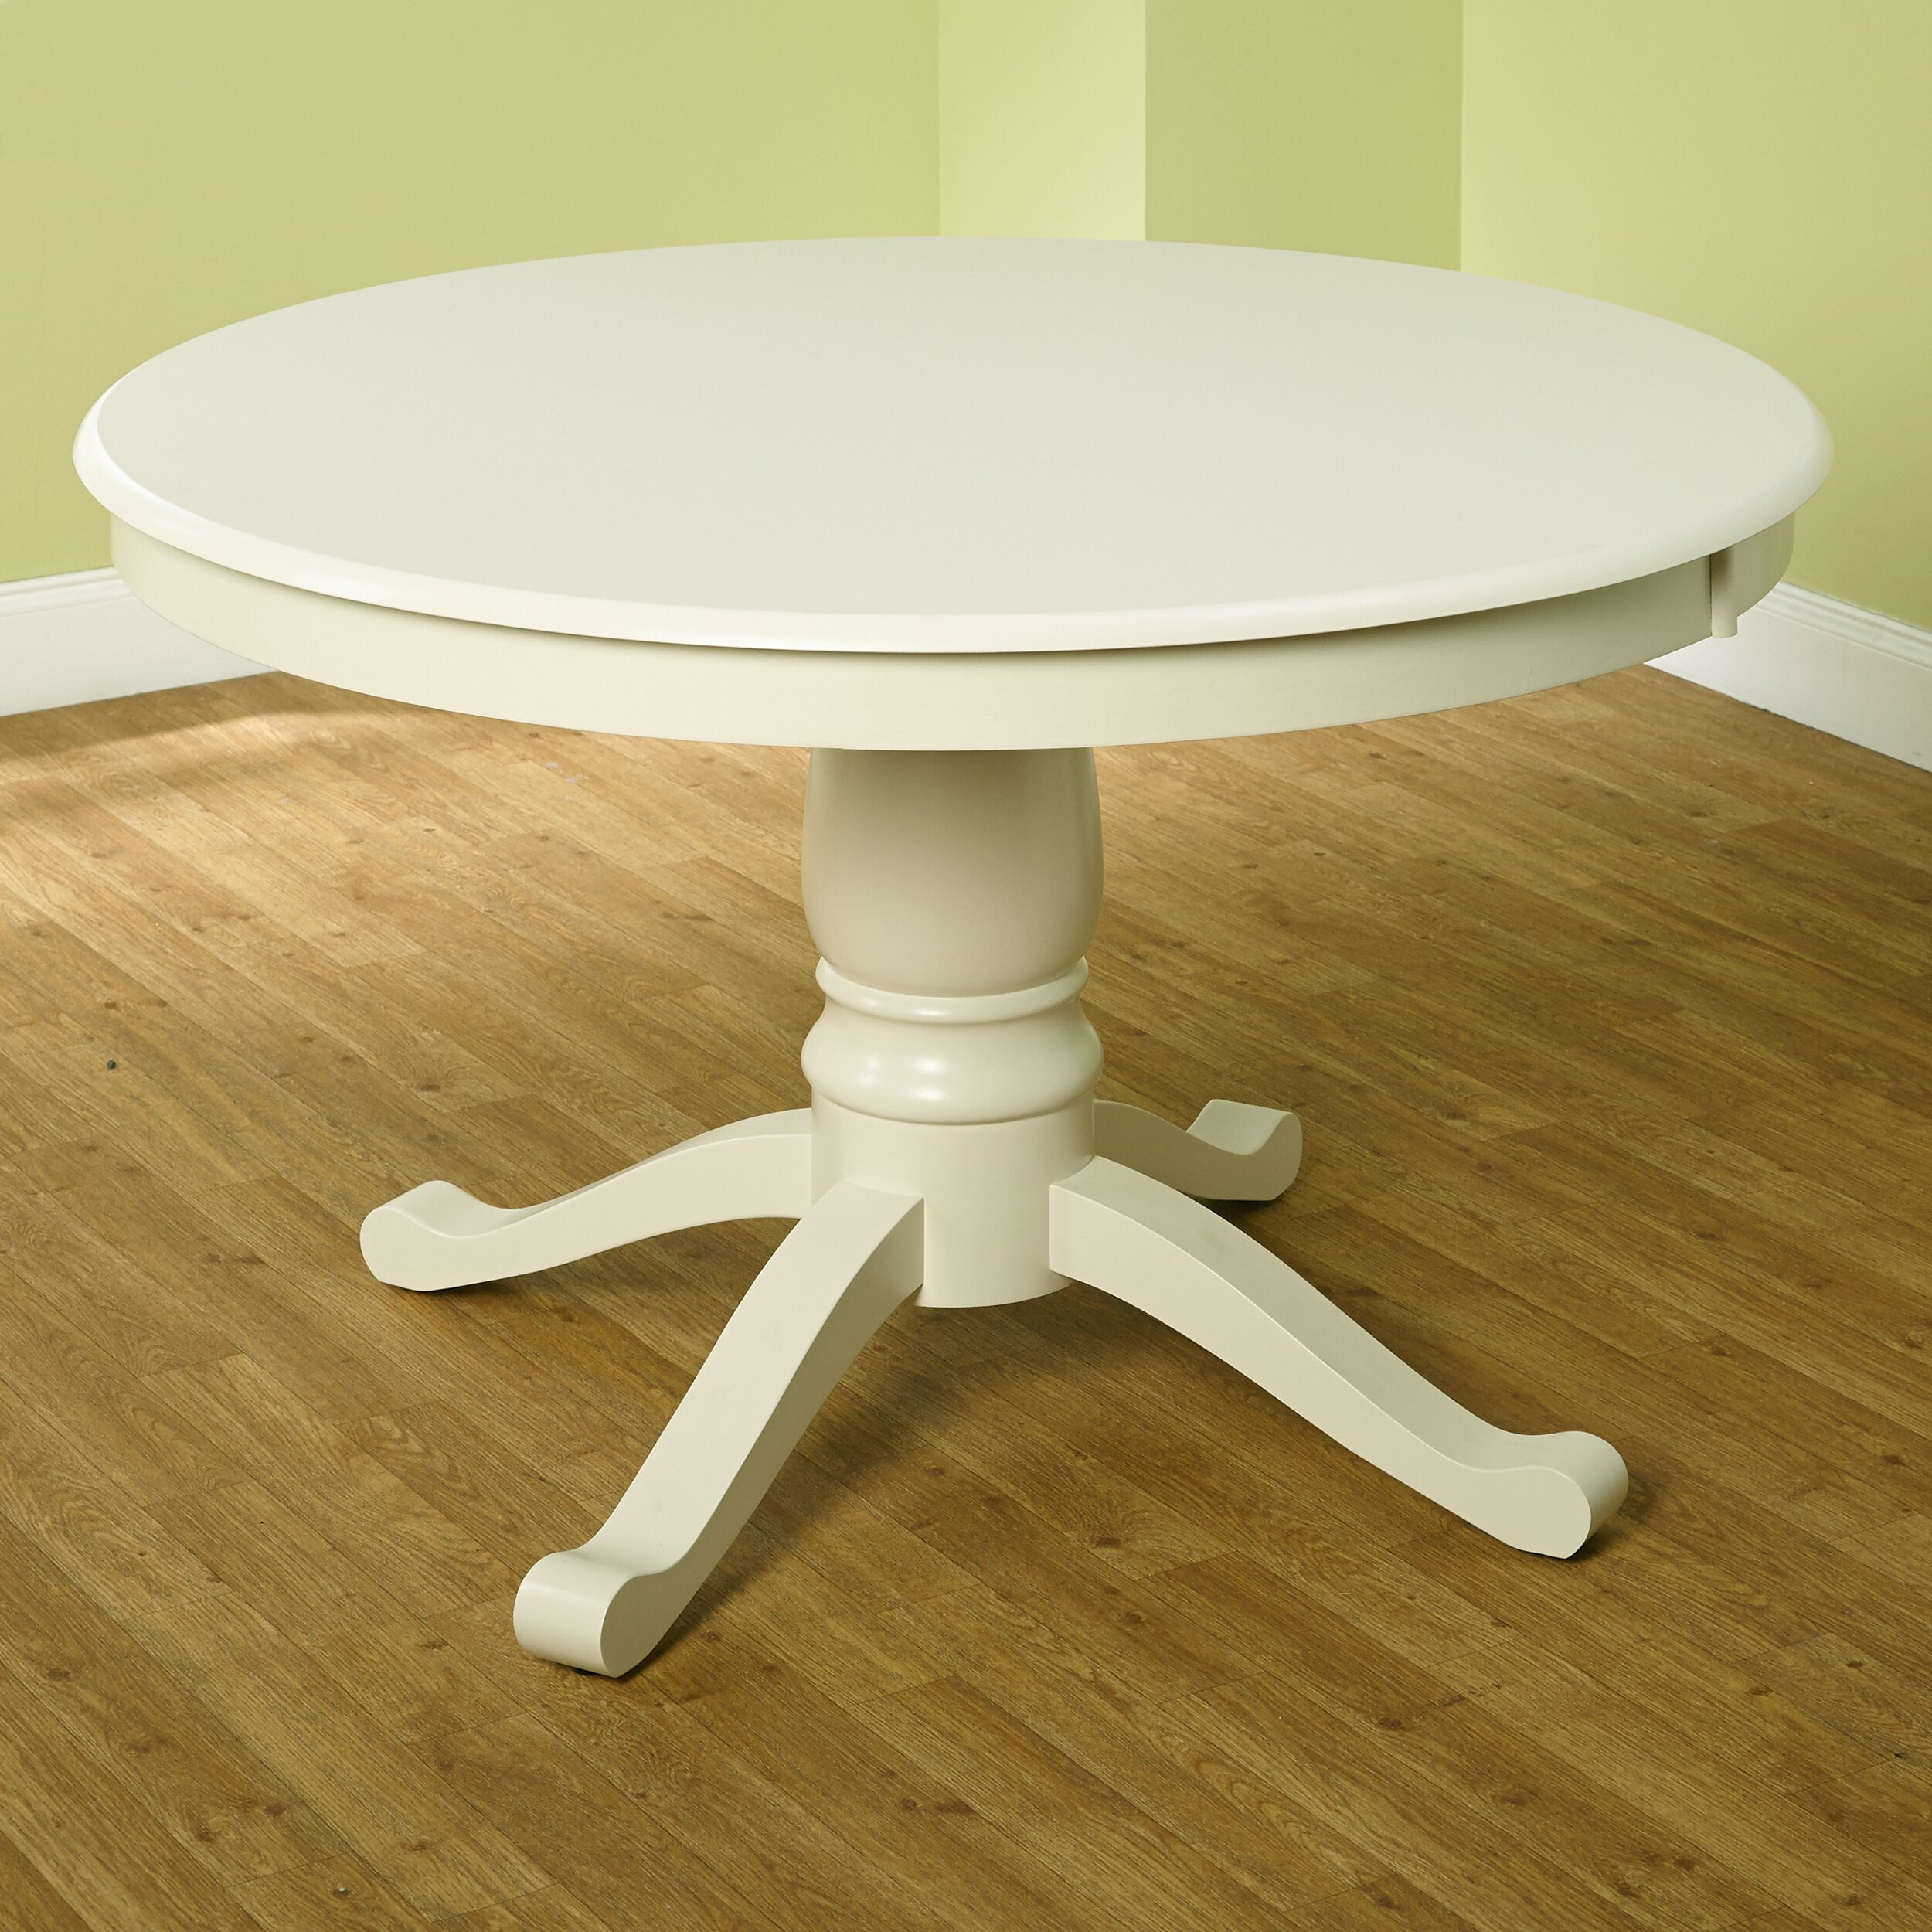 Tms windsor dining table reviews for Wayfair dining table